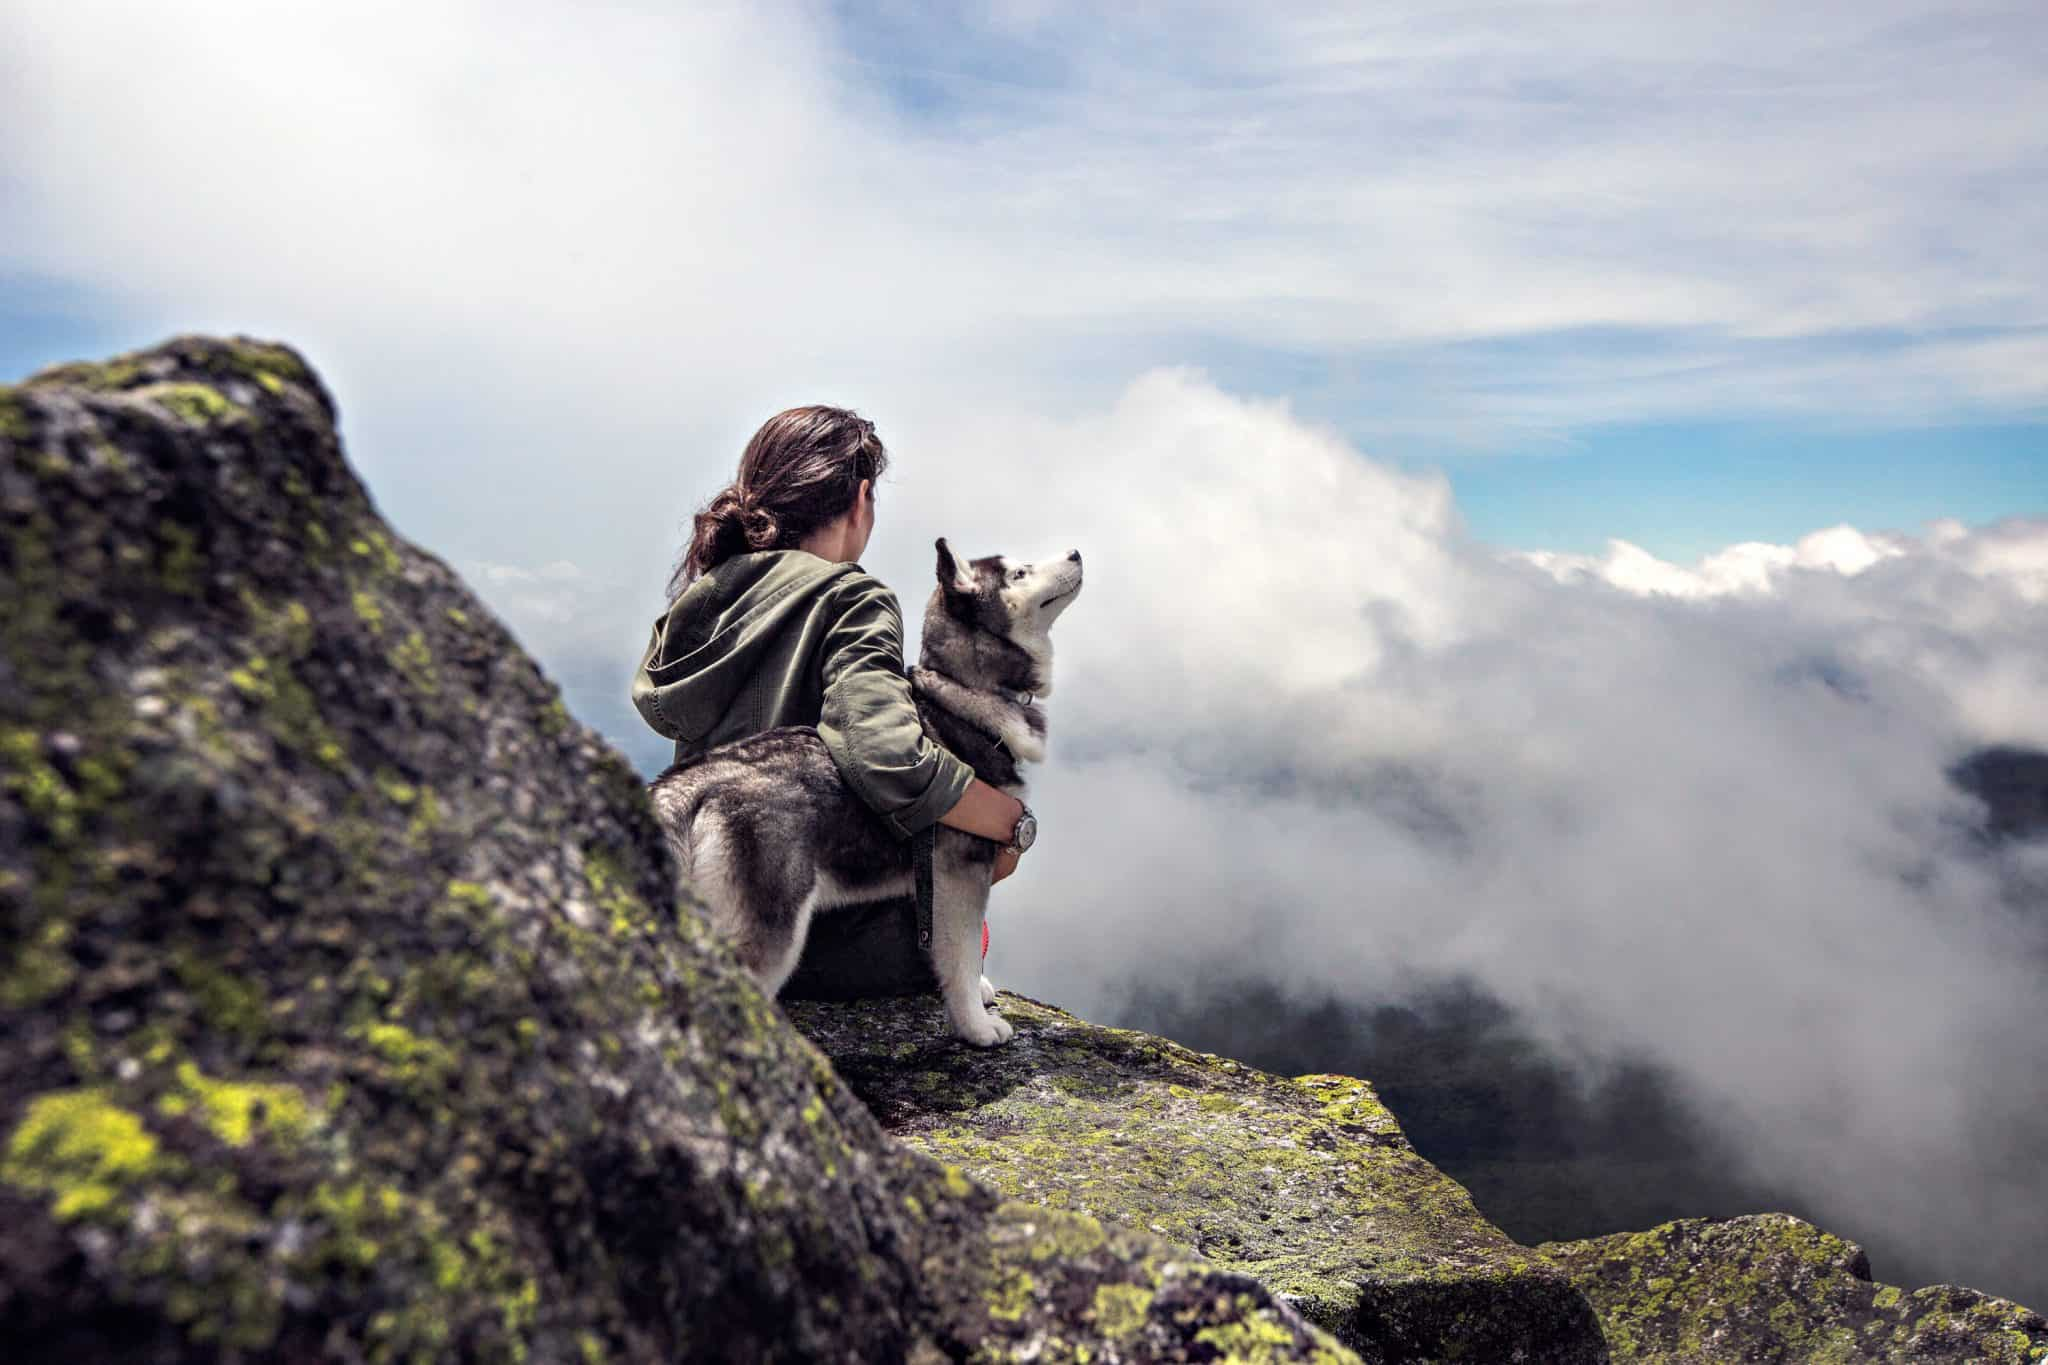 Dog and its owner on a mountain looking out at the view